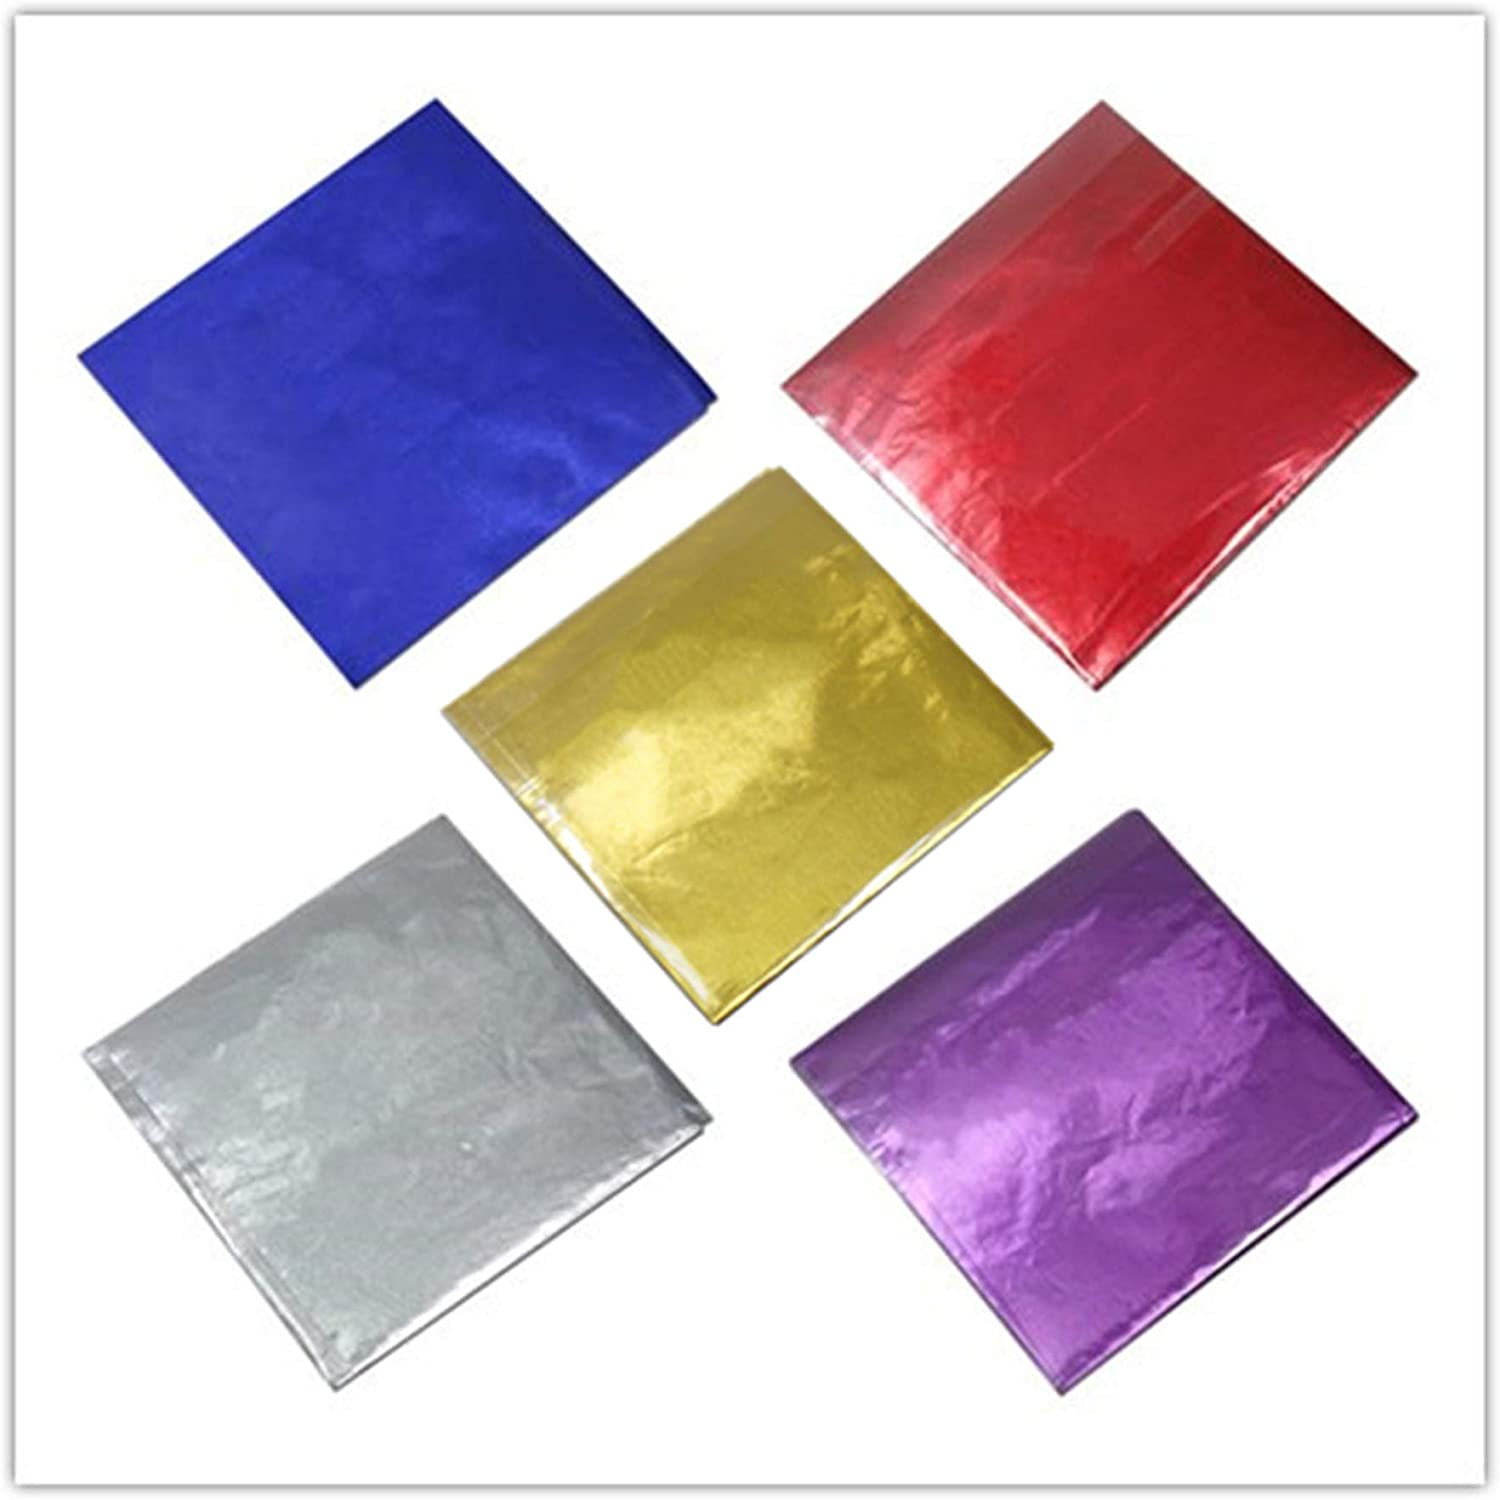 500 Pcs 5 Colors Chocolate Candy W Foil Wrappers Aluminium Paper Boston Mall Max 89% OFF